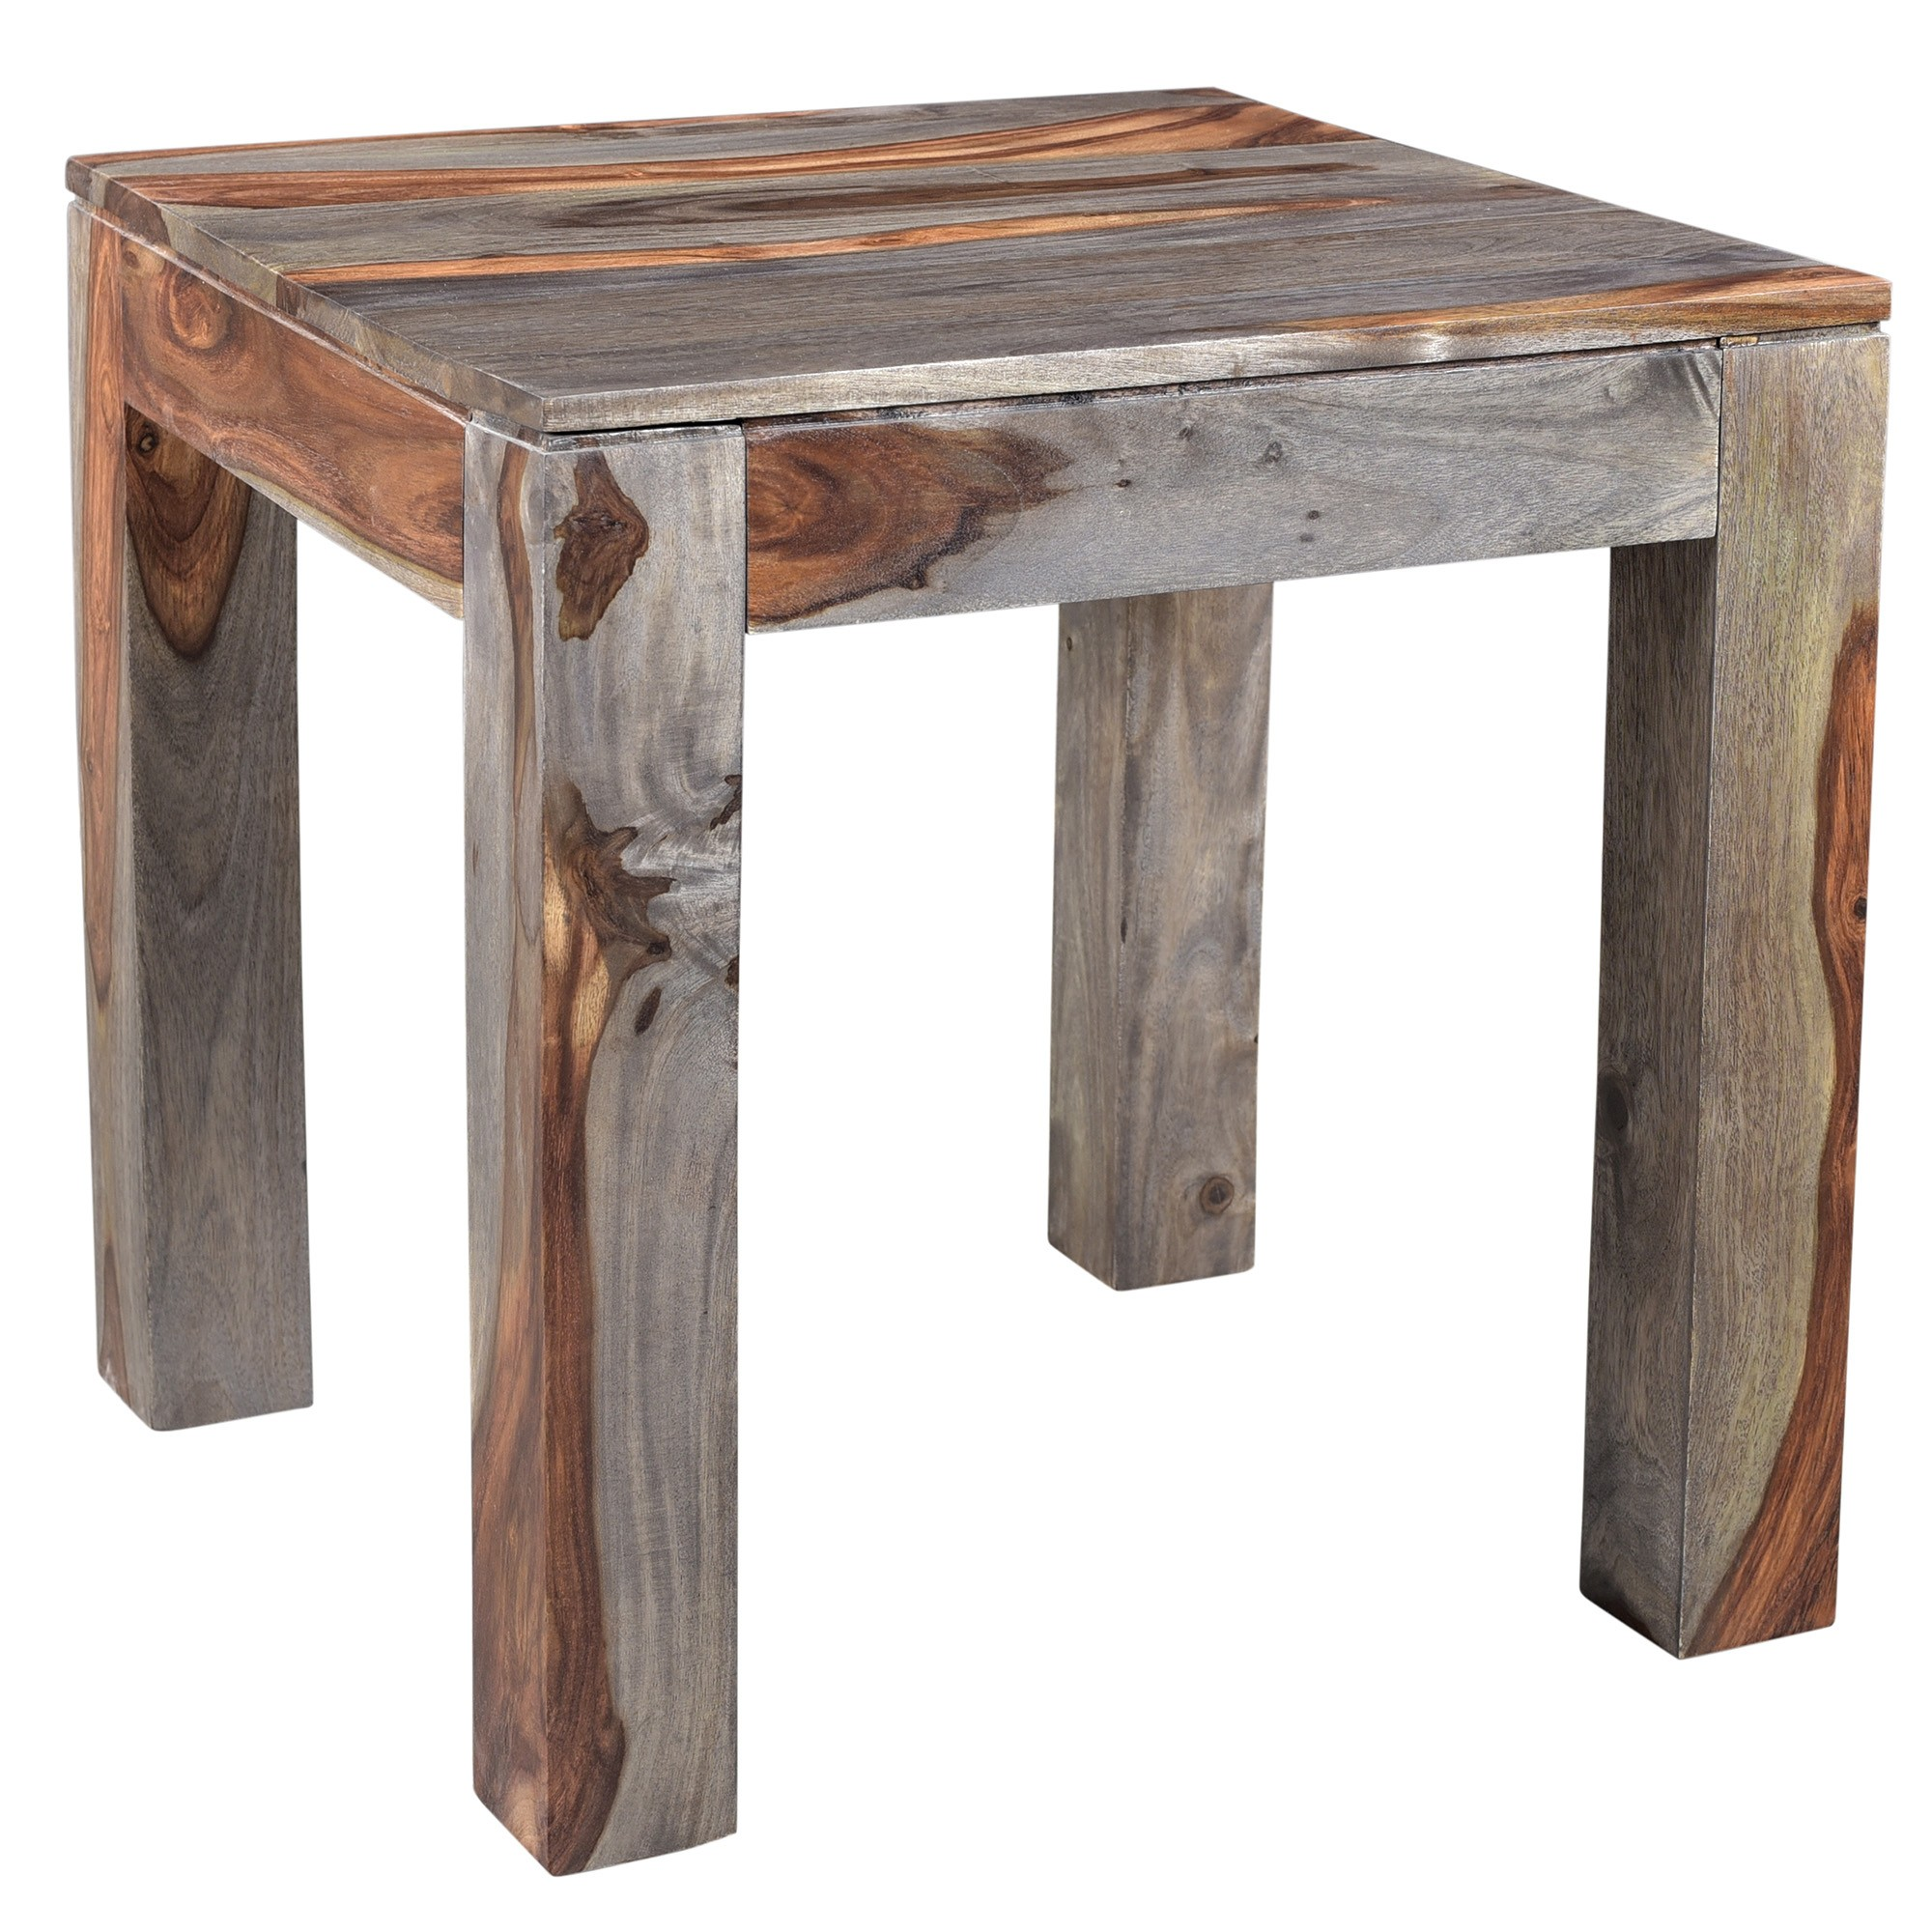 idris accent table grey tiny wood weathered gray glass side tables for living room round coffee pottery barn style furniture trestle dining target end metal and gold home